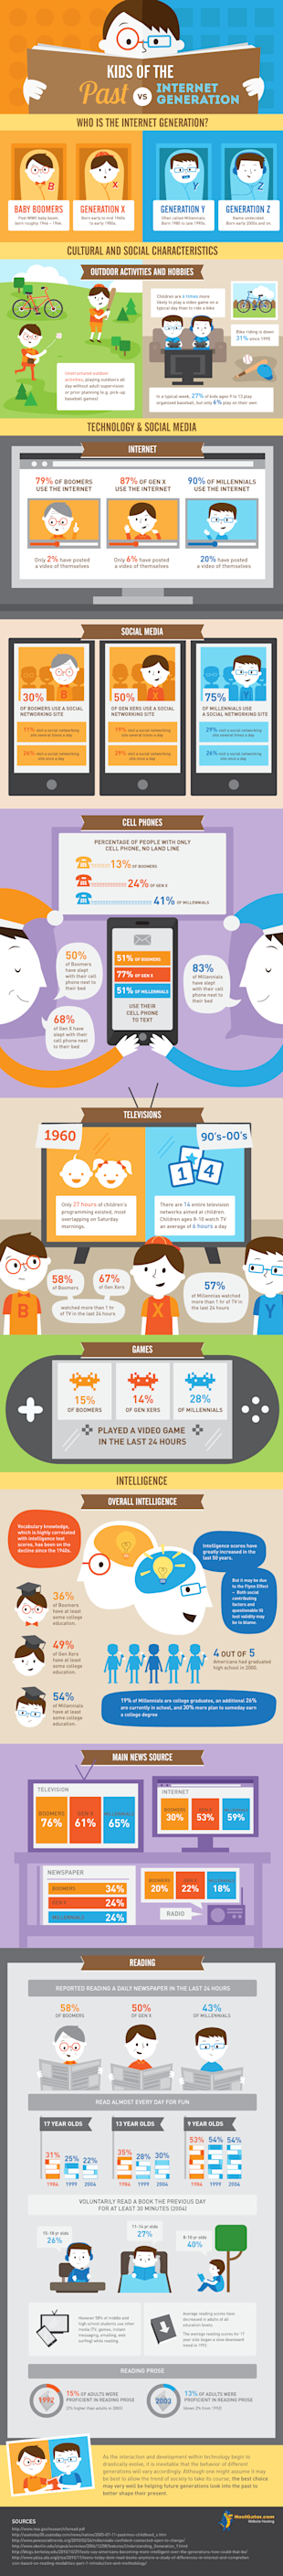 Kids of The Past vs. Kids of the Internet Generation image kids of the past vs internet generation infographic1